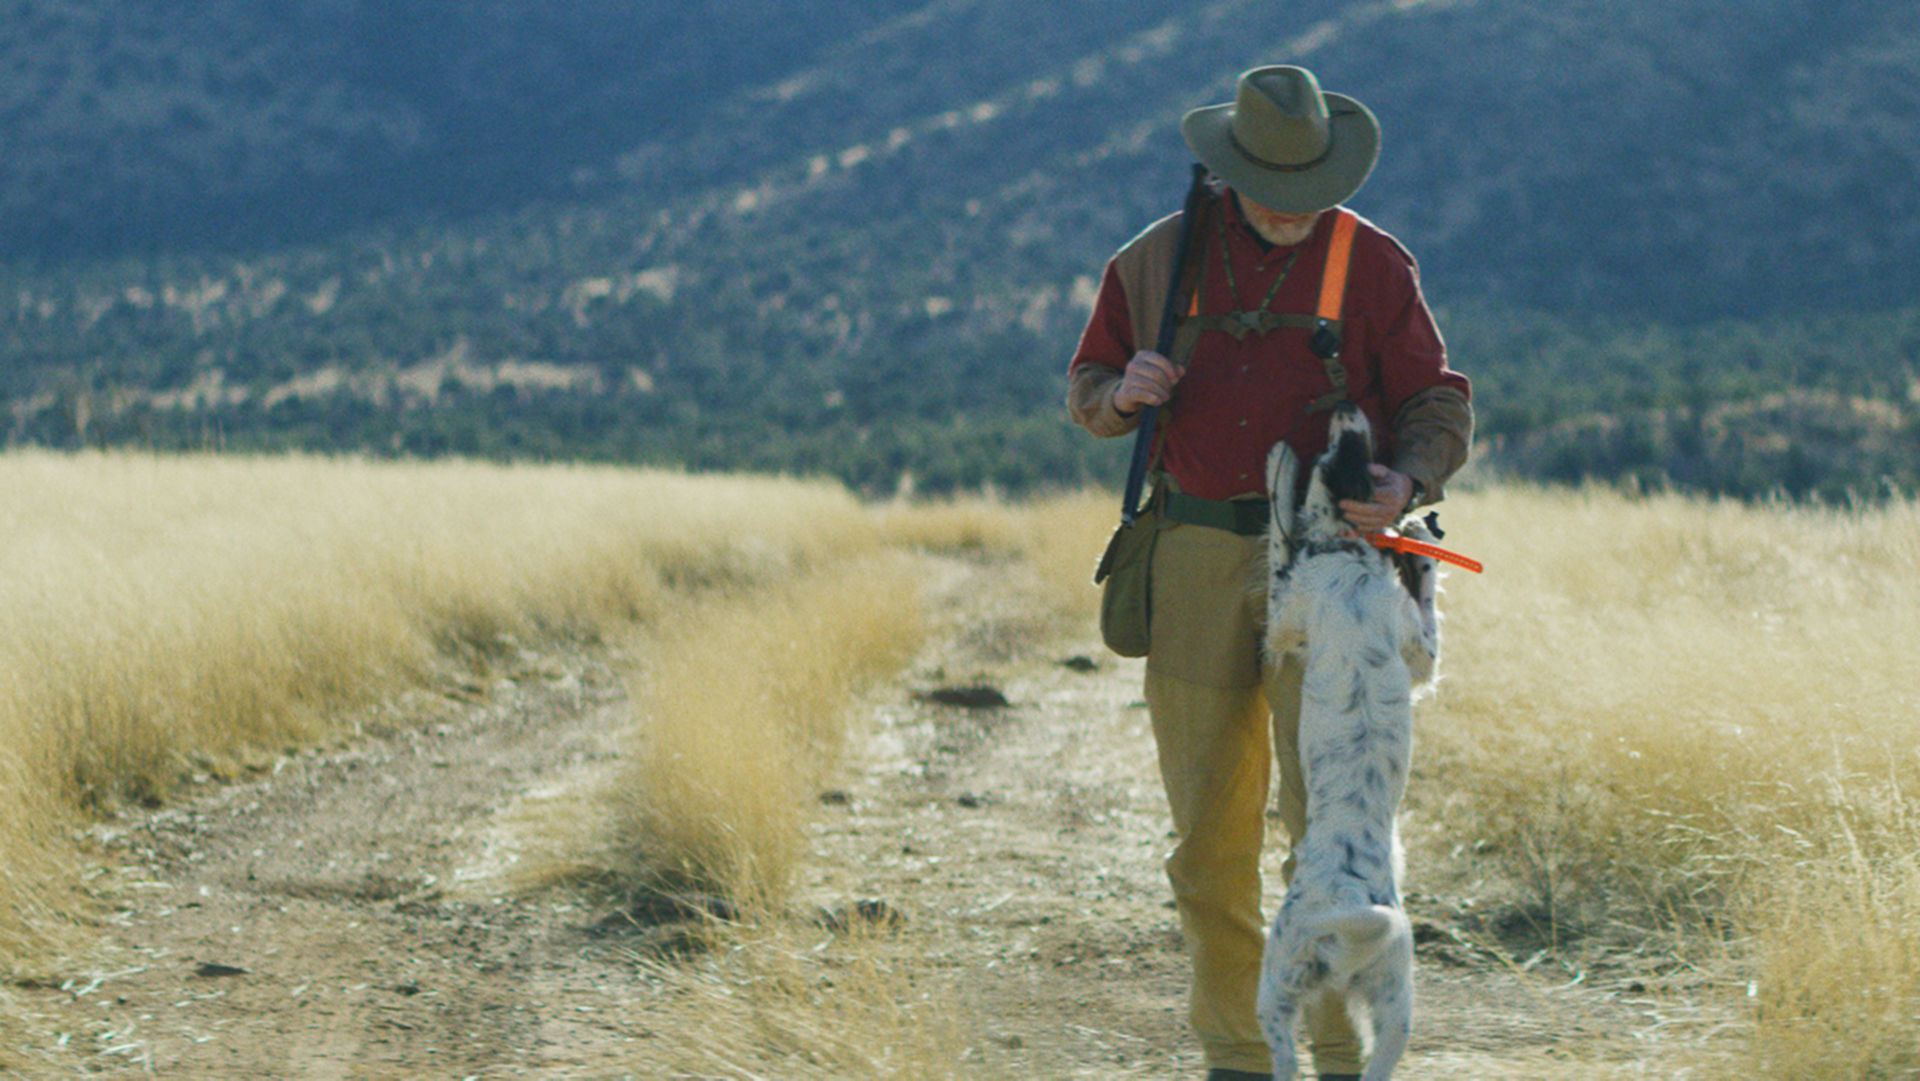 dog jumping on a man dressed for upland hunting